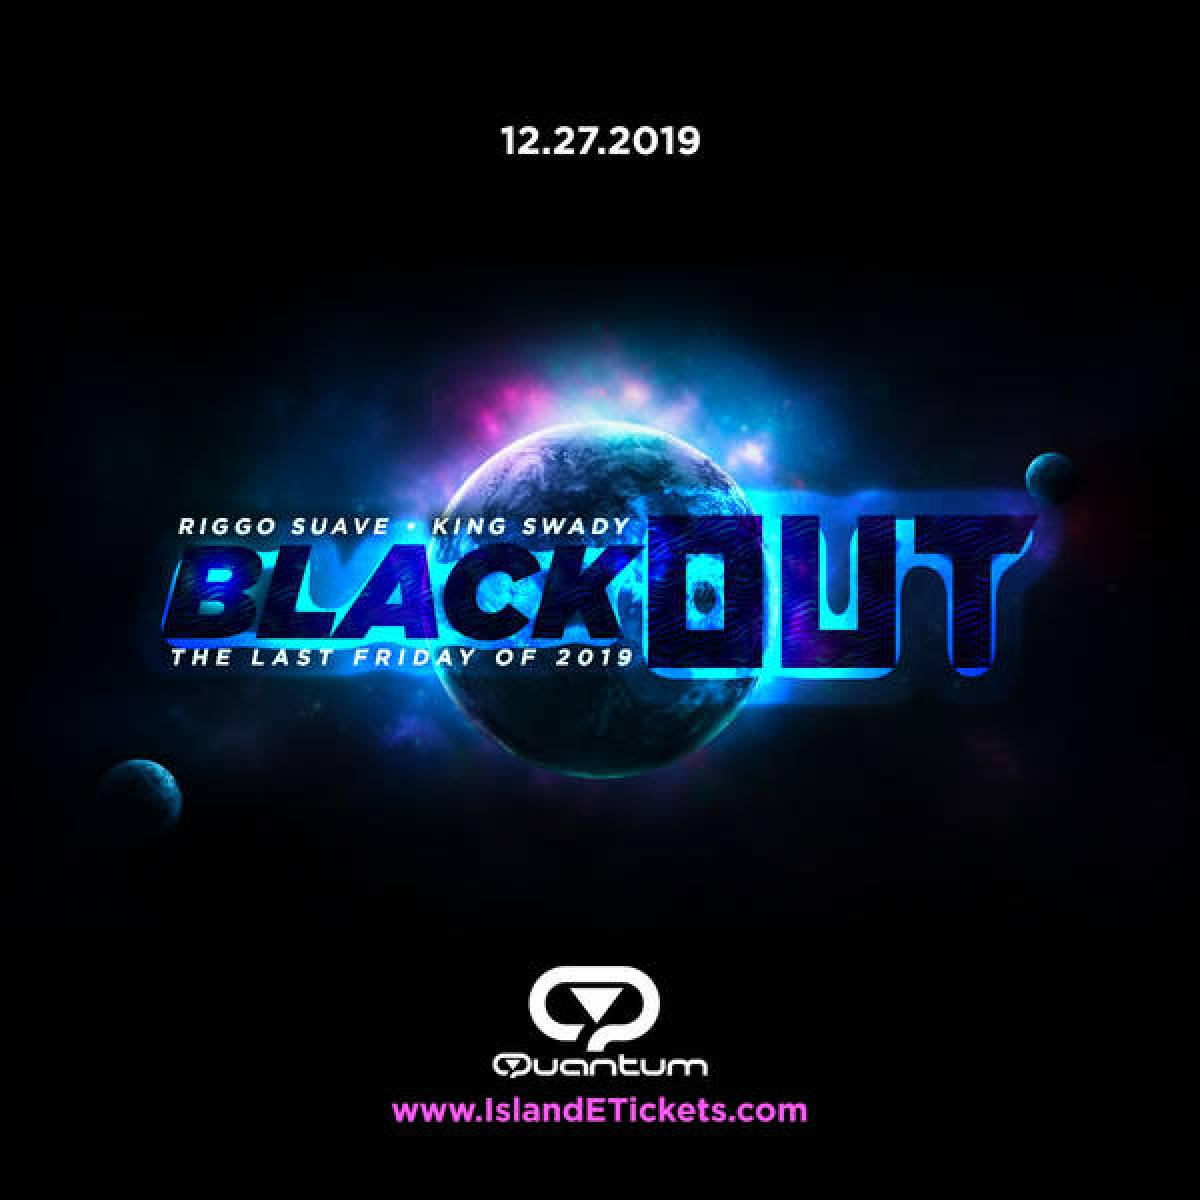 Black Out flyer or graphic.